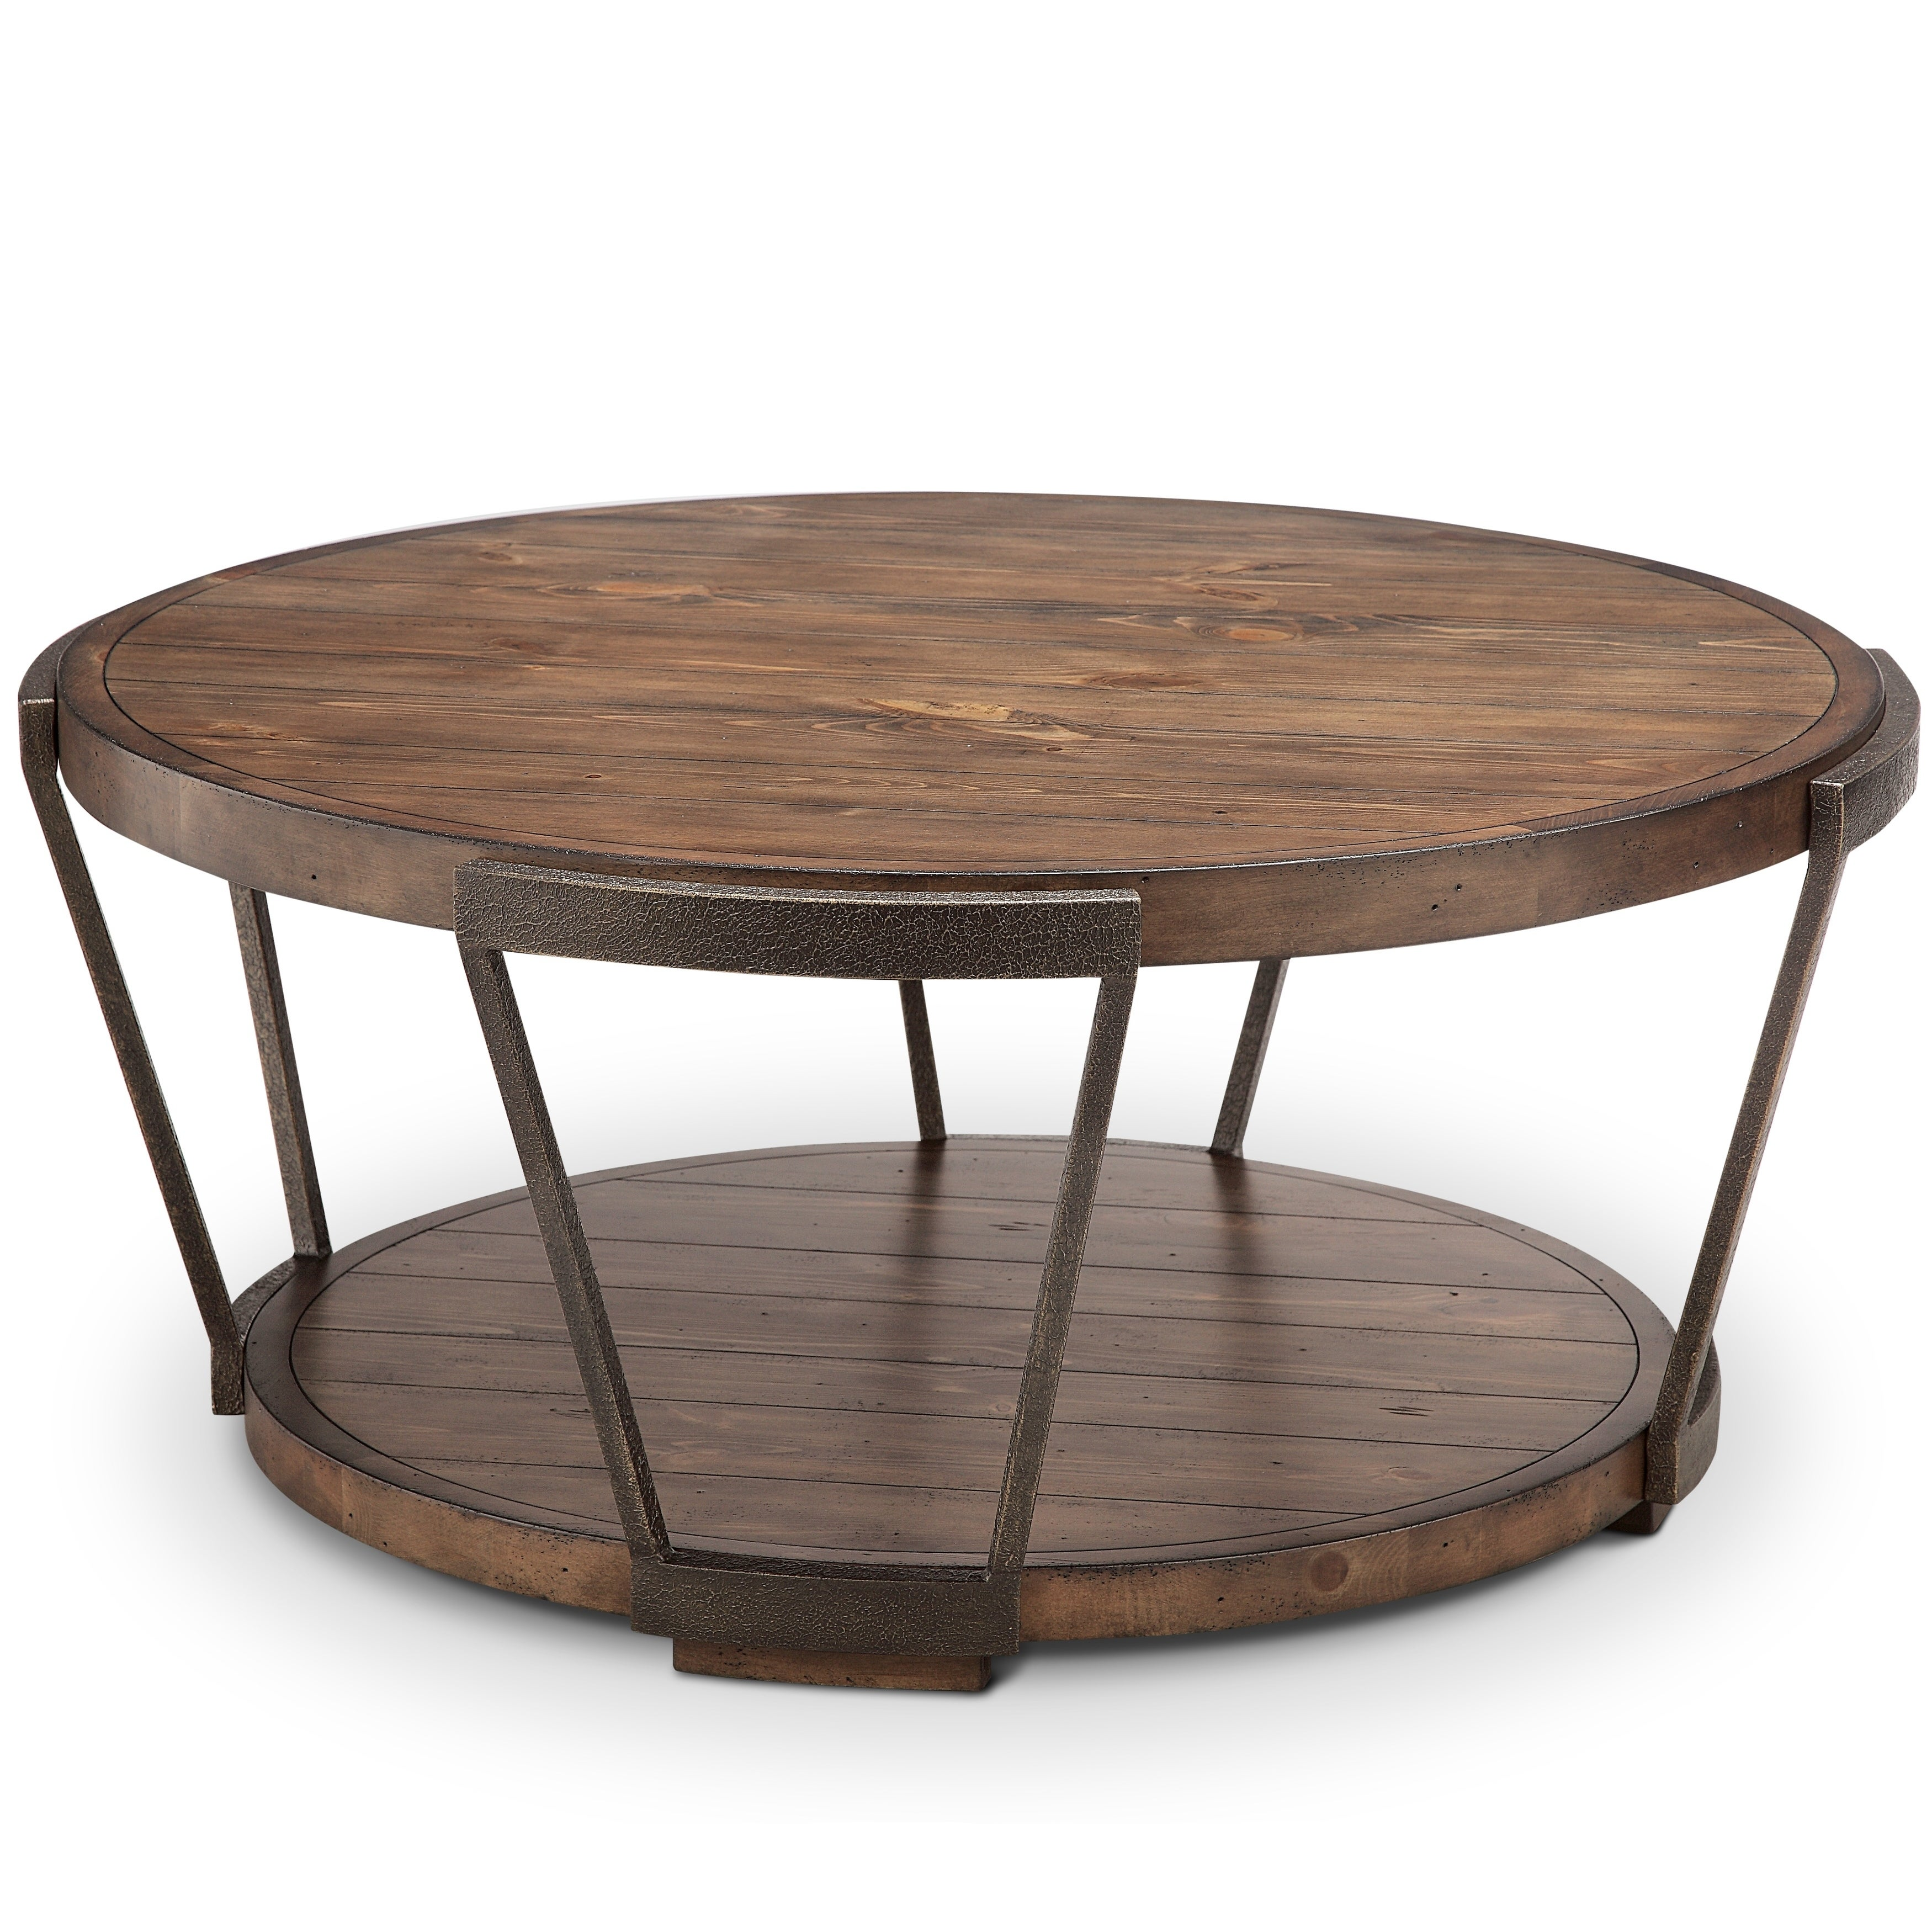 Shop Yukon Industrial Bourbon And Aged Iron Round Coffee Table With Casters Overstock 19844004